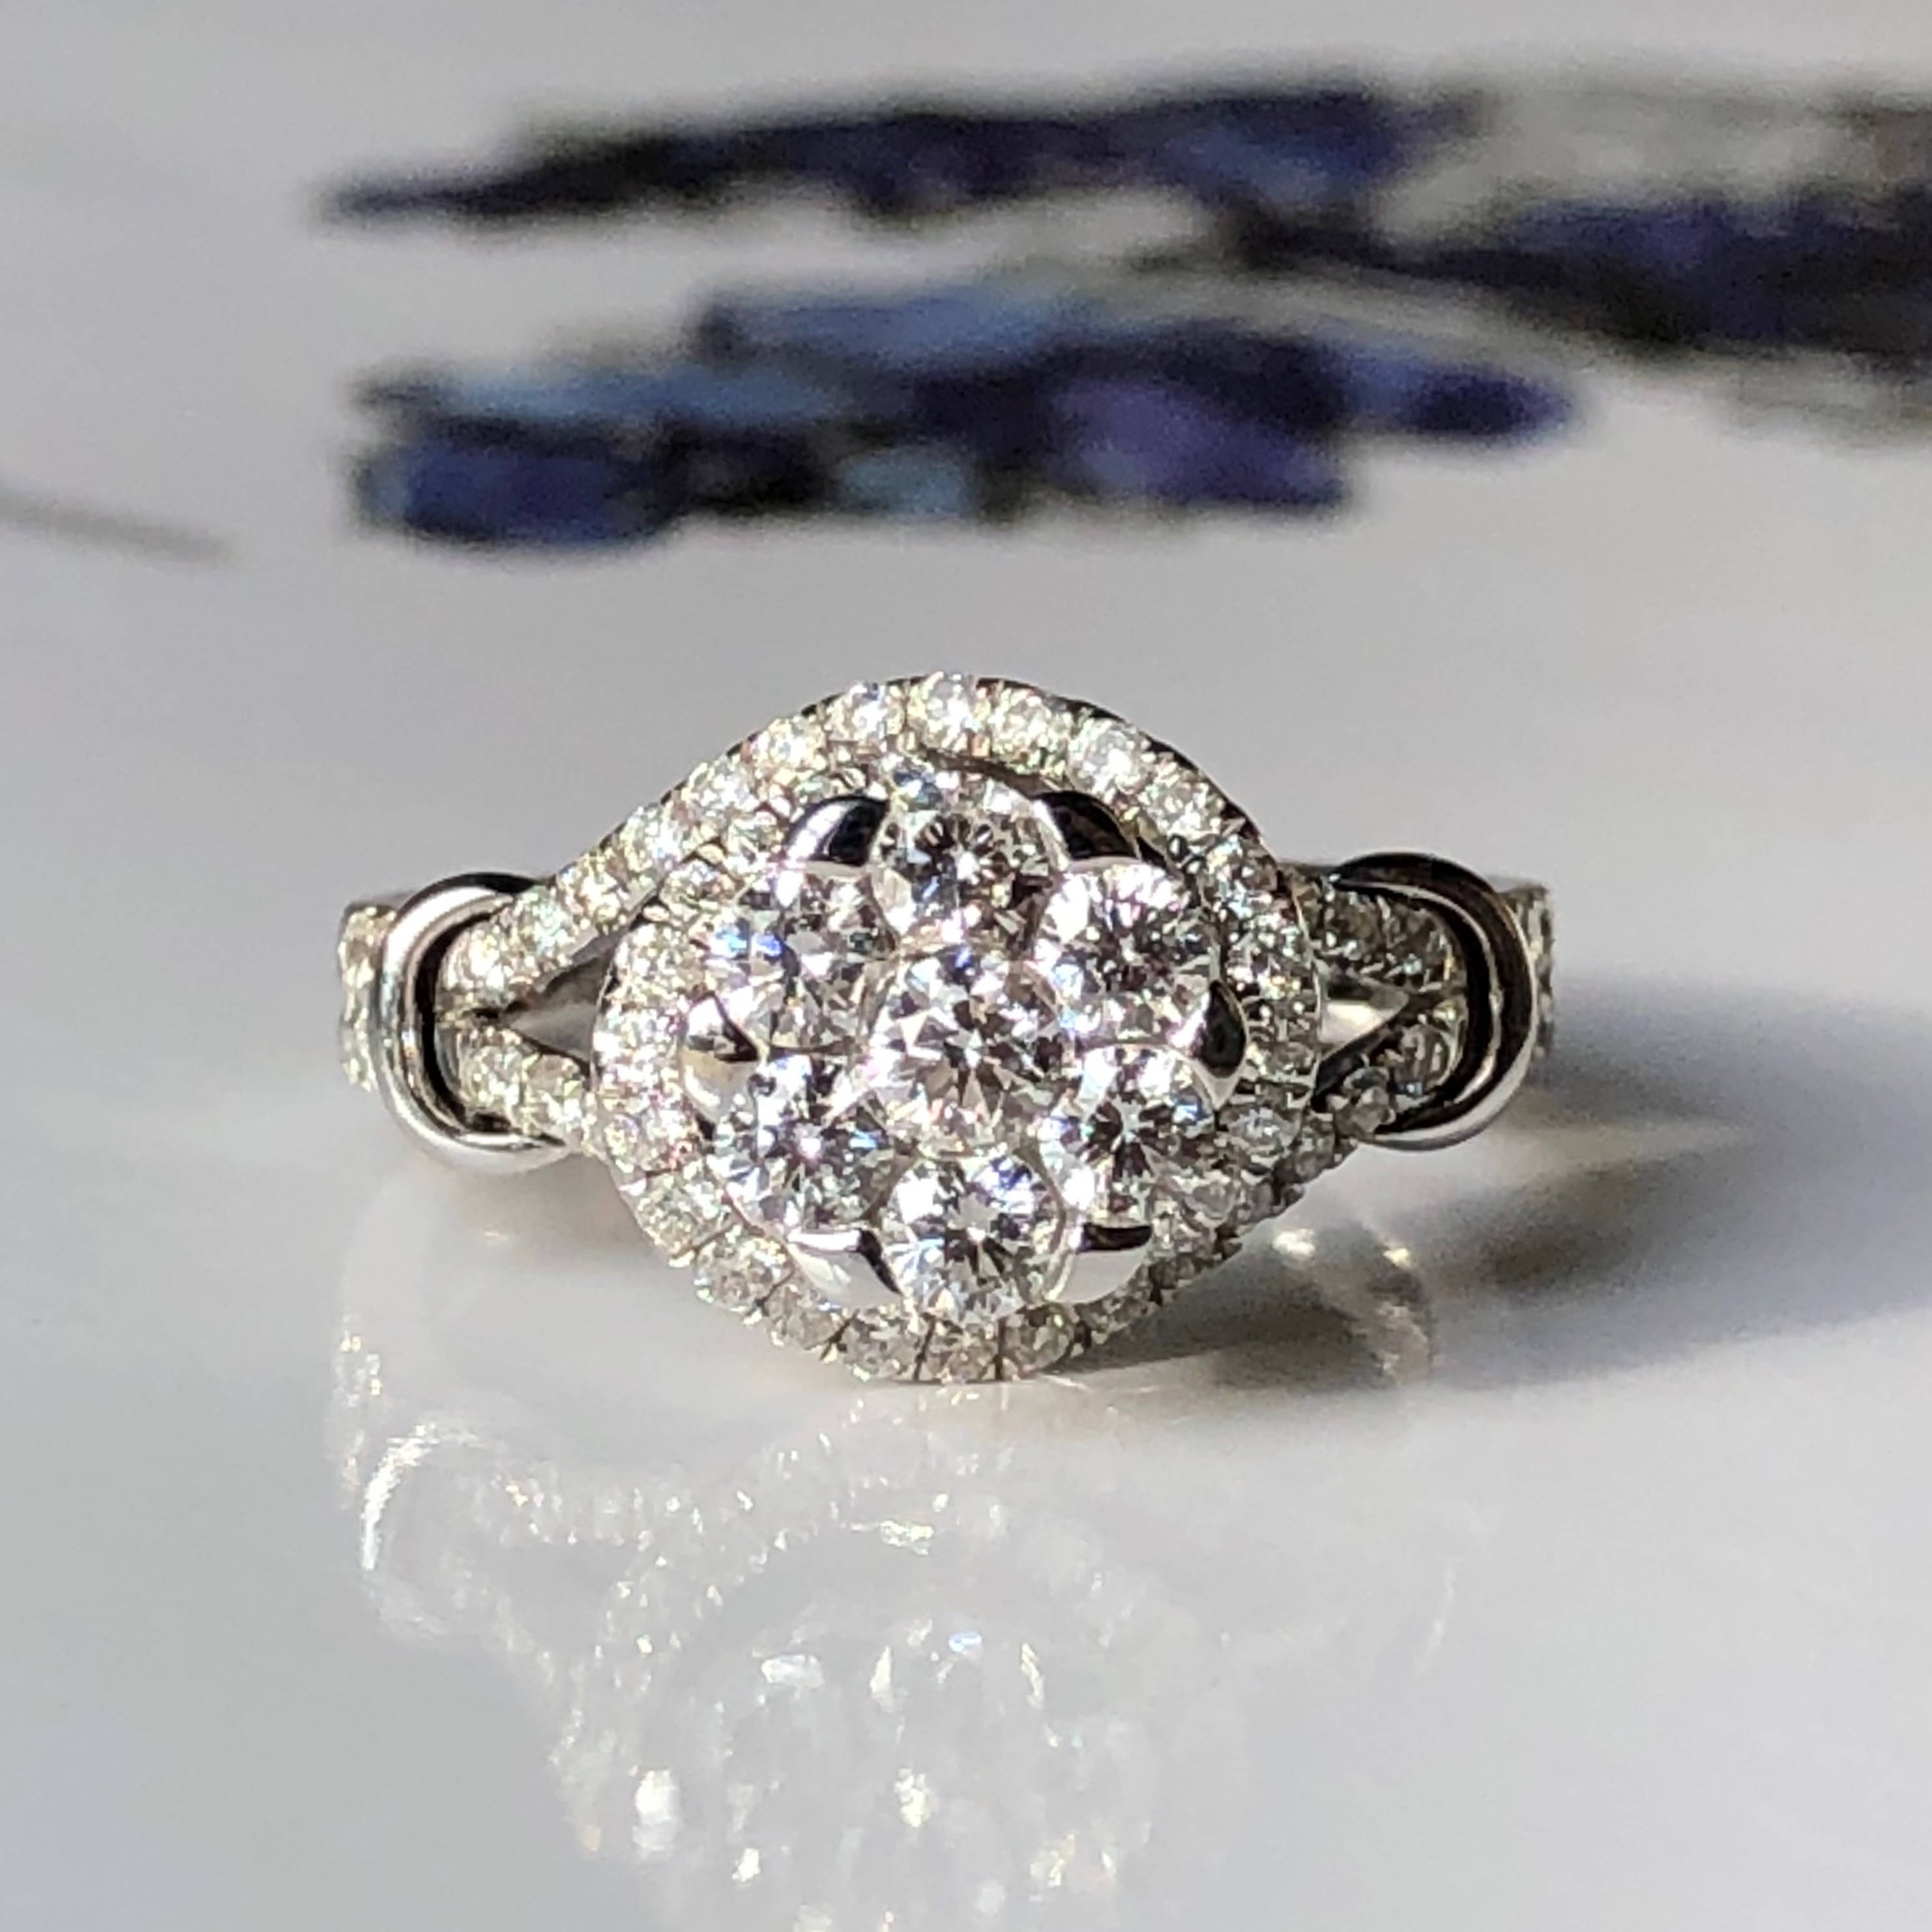 ring diamond april sotheby lot jewels magnificent s ecatalogue en web auctions